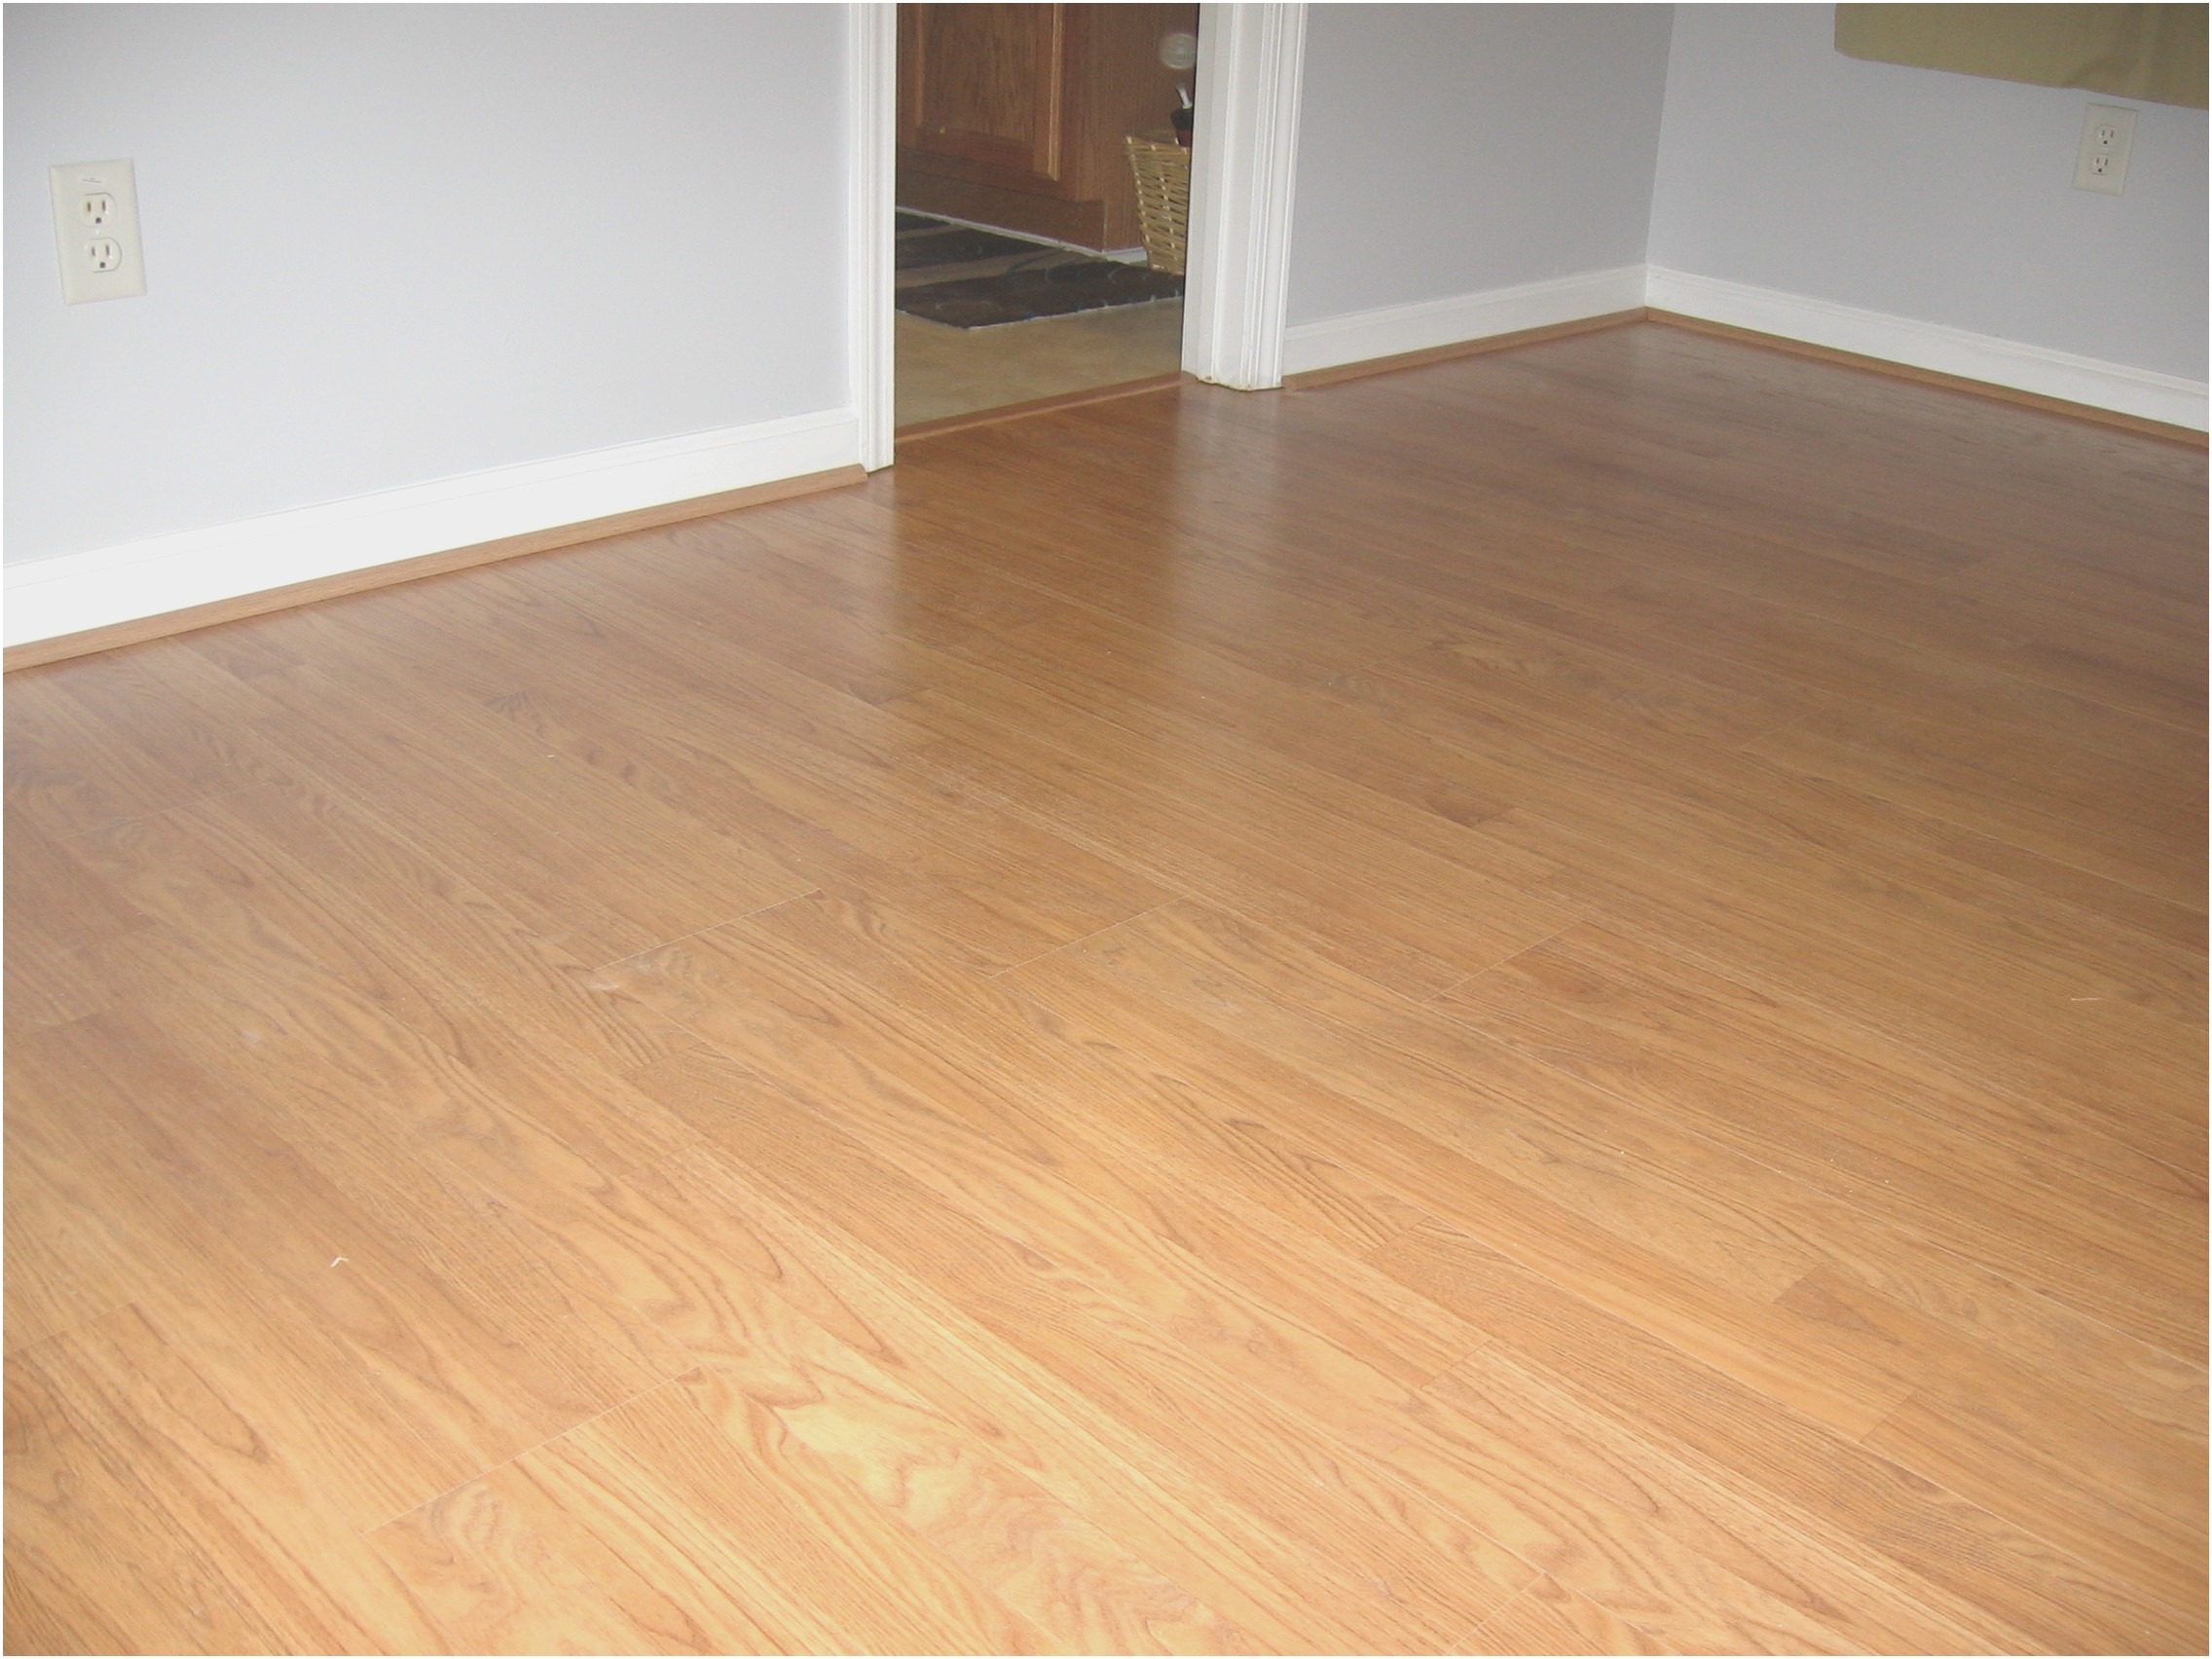 Mohawk home flooring carpeting hardwood vinyl tile mohawk for Mohawk vinyl flooring